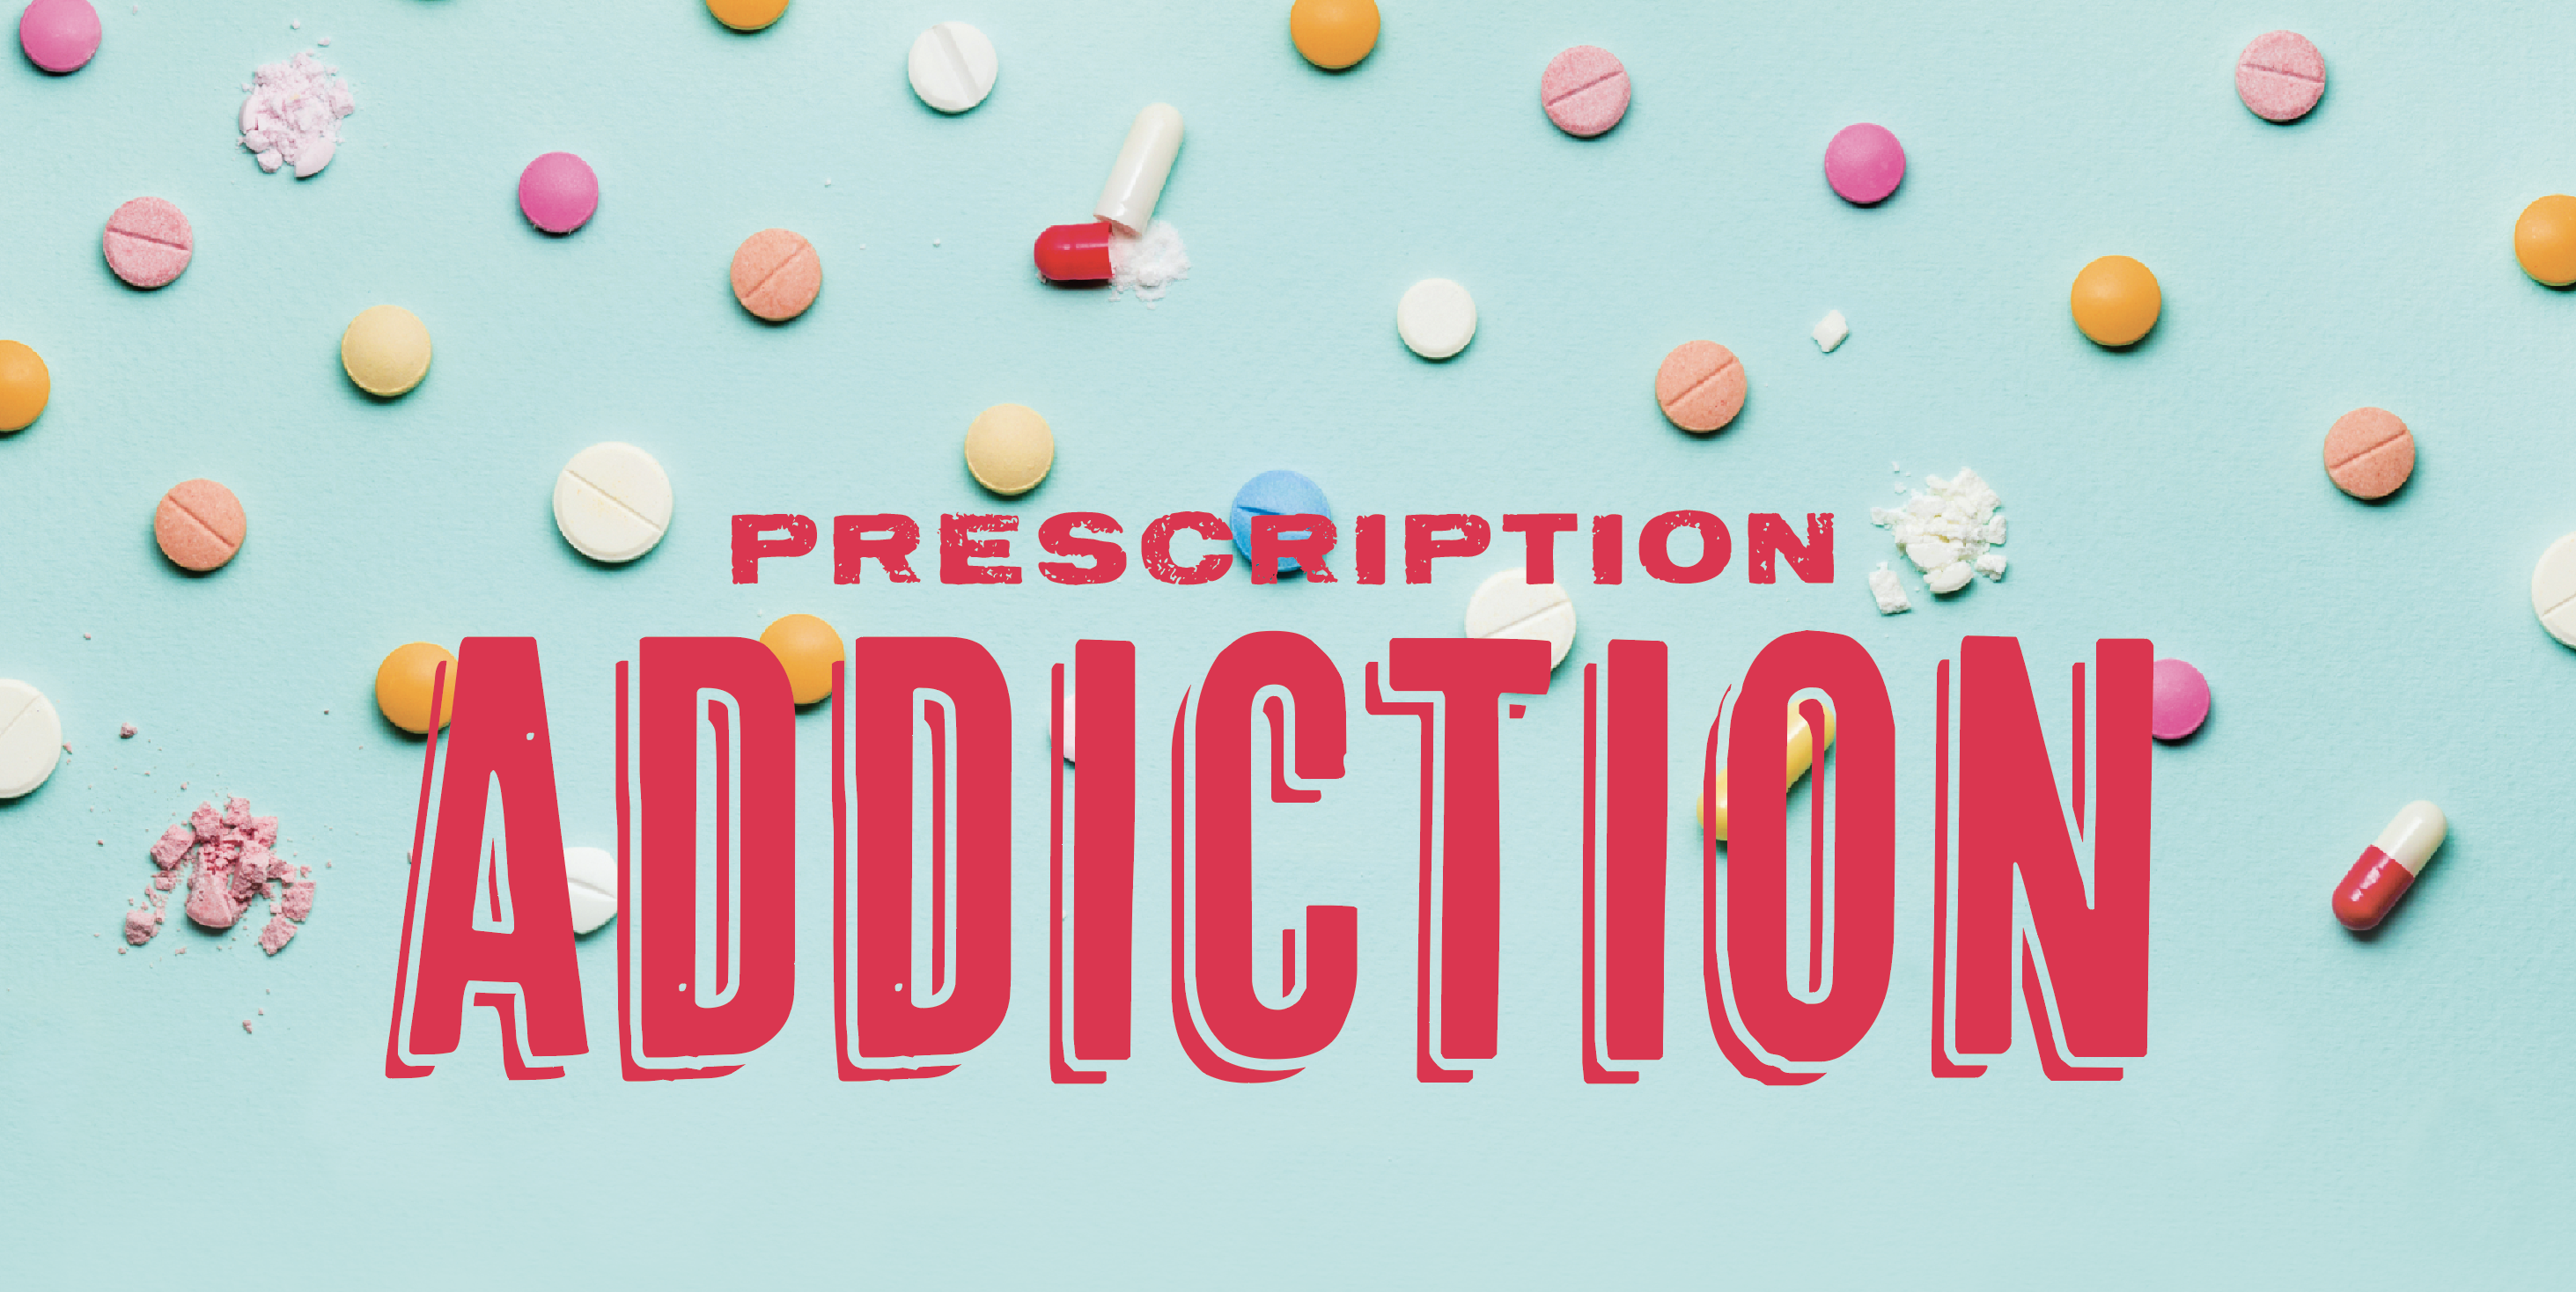 Prescription Addiction